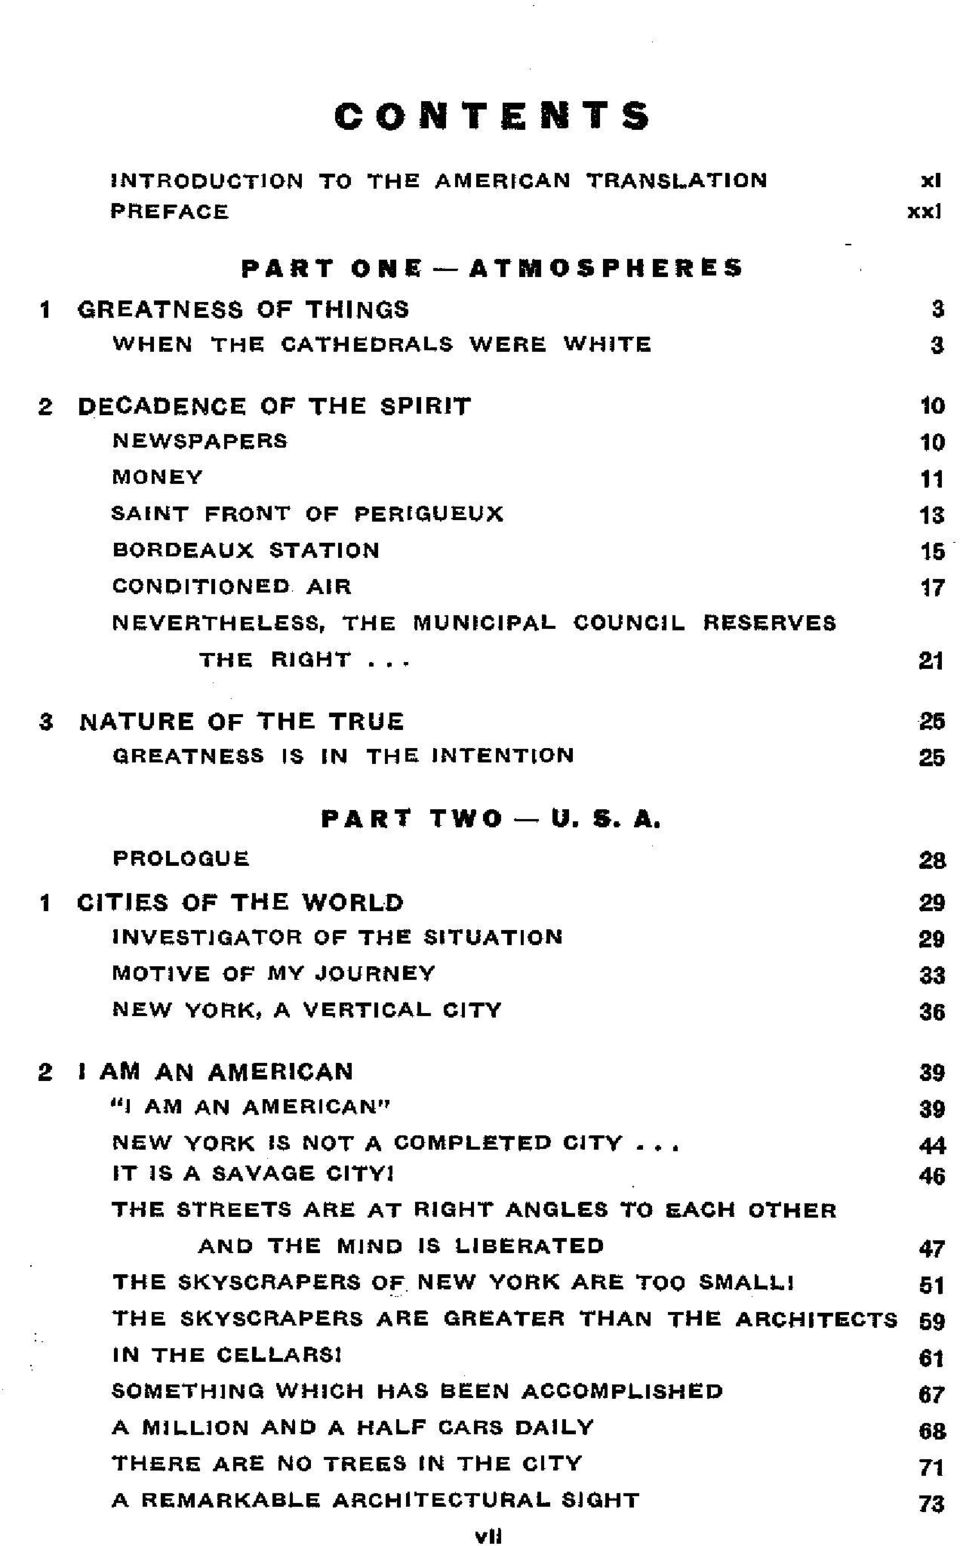 NEVERTHELESS, THE MUNICIPAL COUNCIL RESERVES THE RIGHT 3 NATURE OF THE TRUE GREATNESS IS IN THE INTENTION PROLOGUE CITIES OF THE WORLD PART TWO - U. S. A.